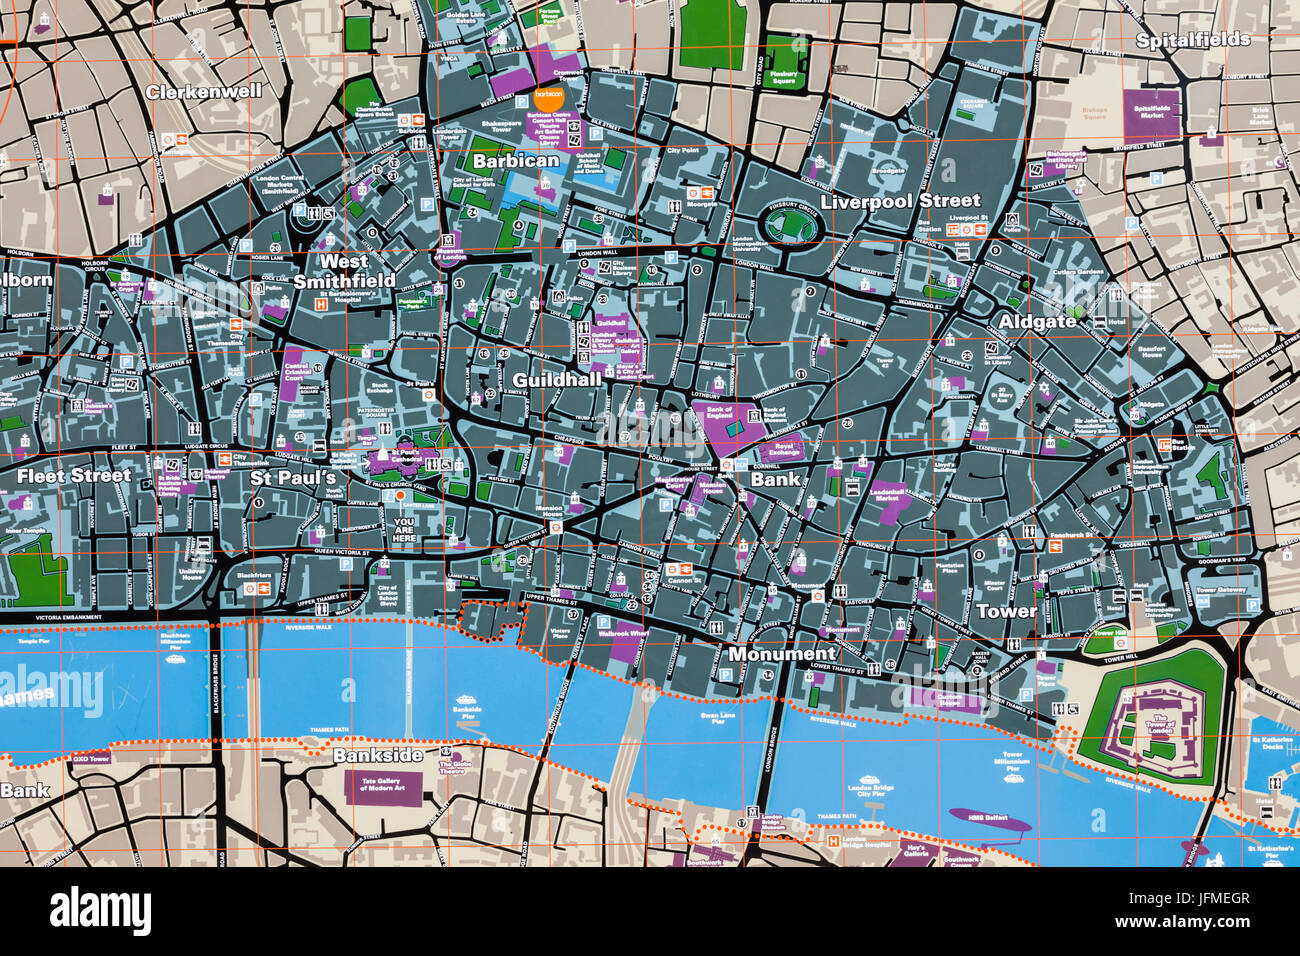 Karte London City.England London City Of London Street Map Stock Photo 147353271